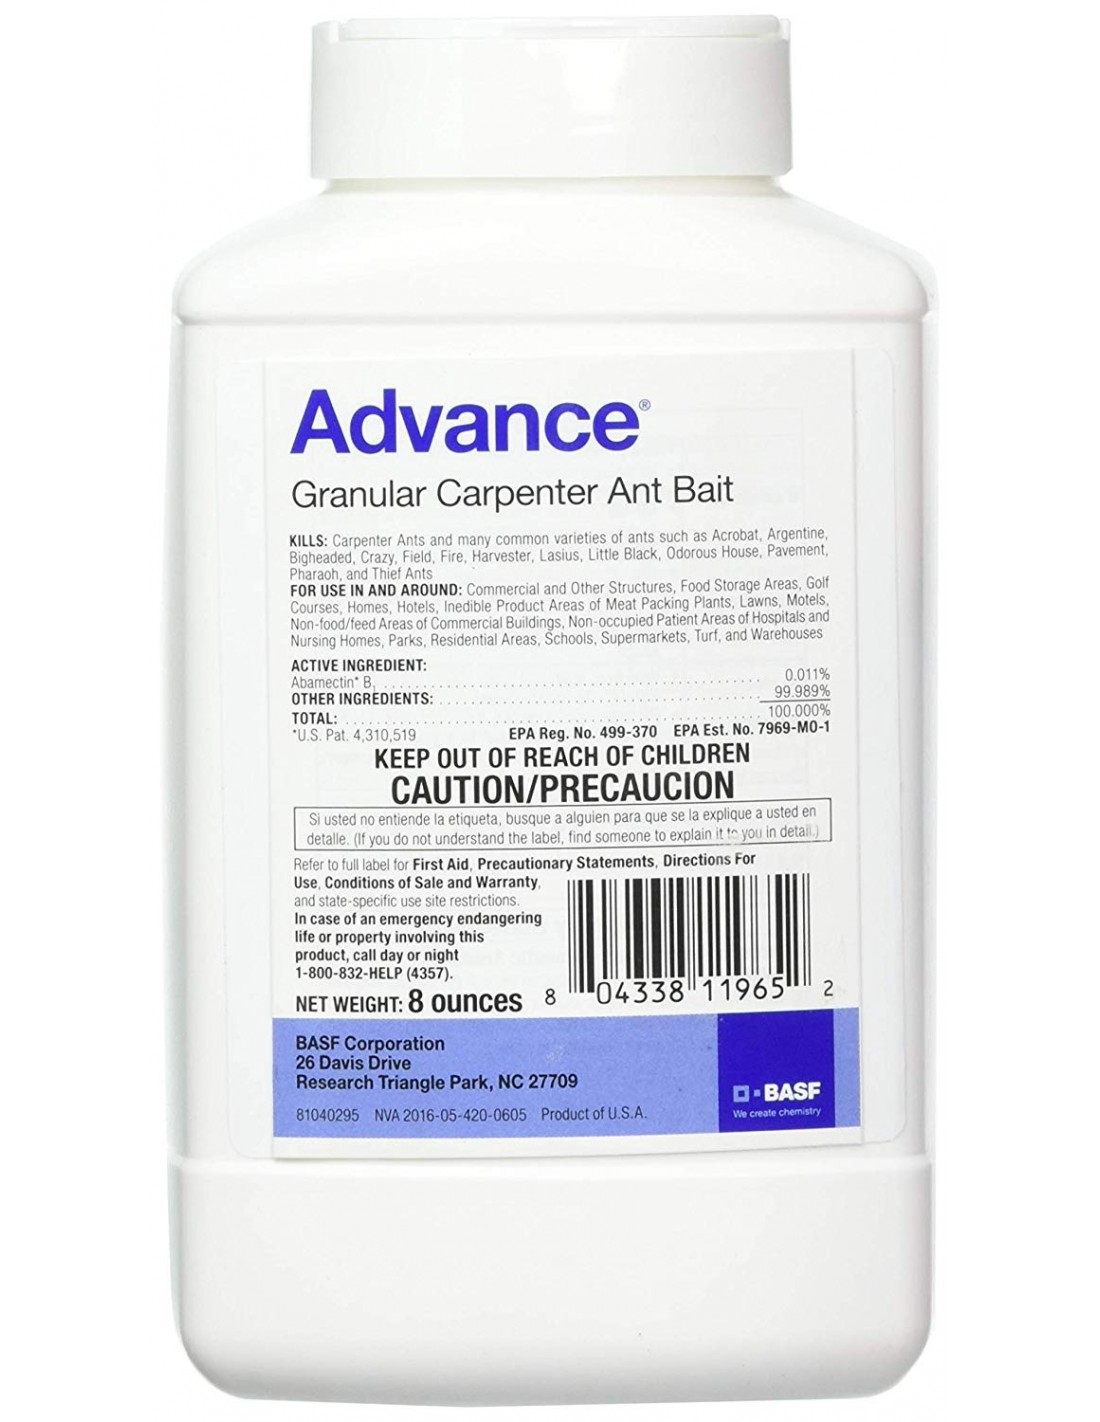 Advance Carpenter Ant Granular Bait